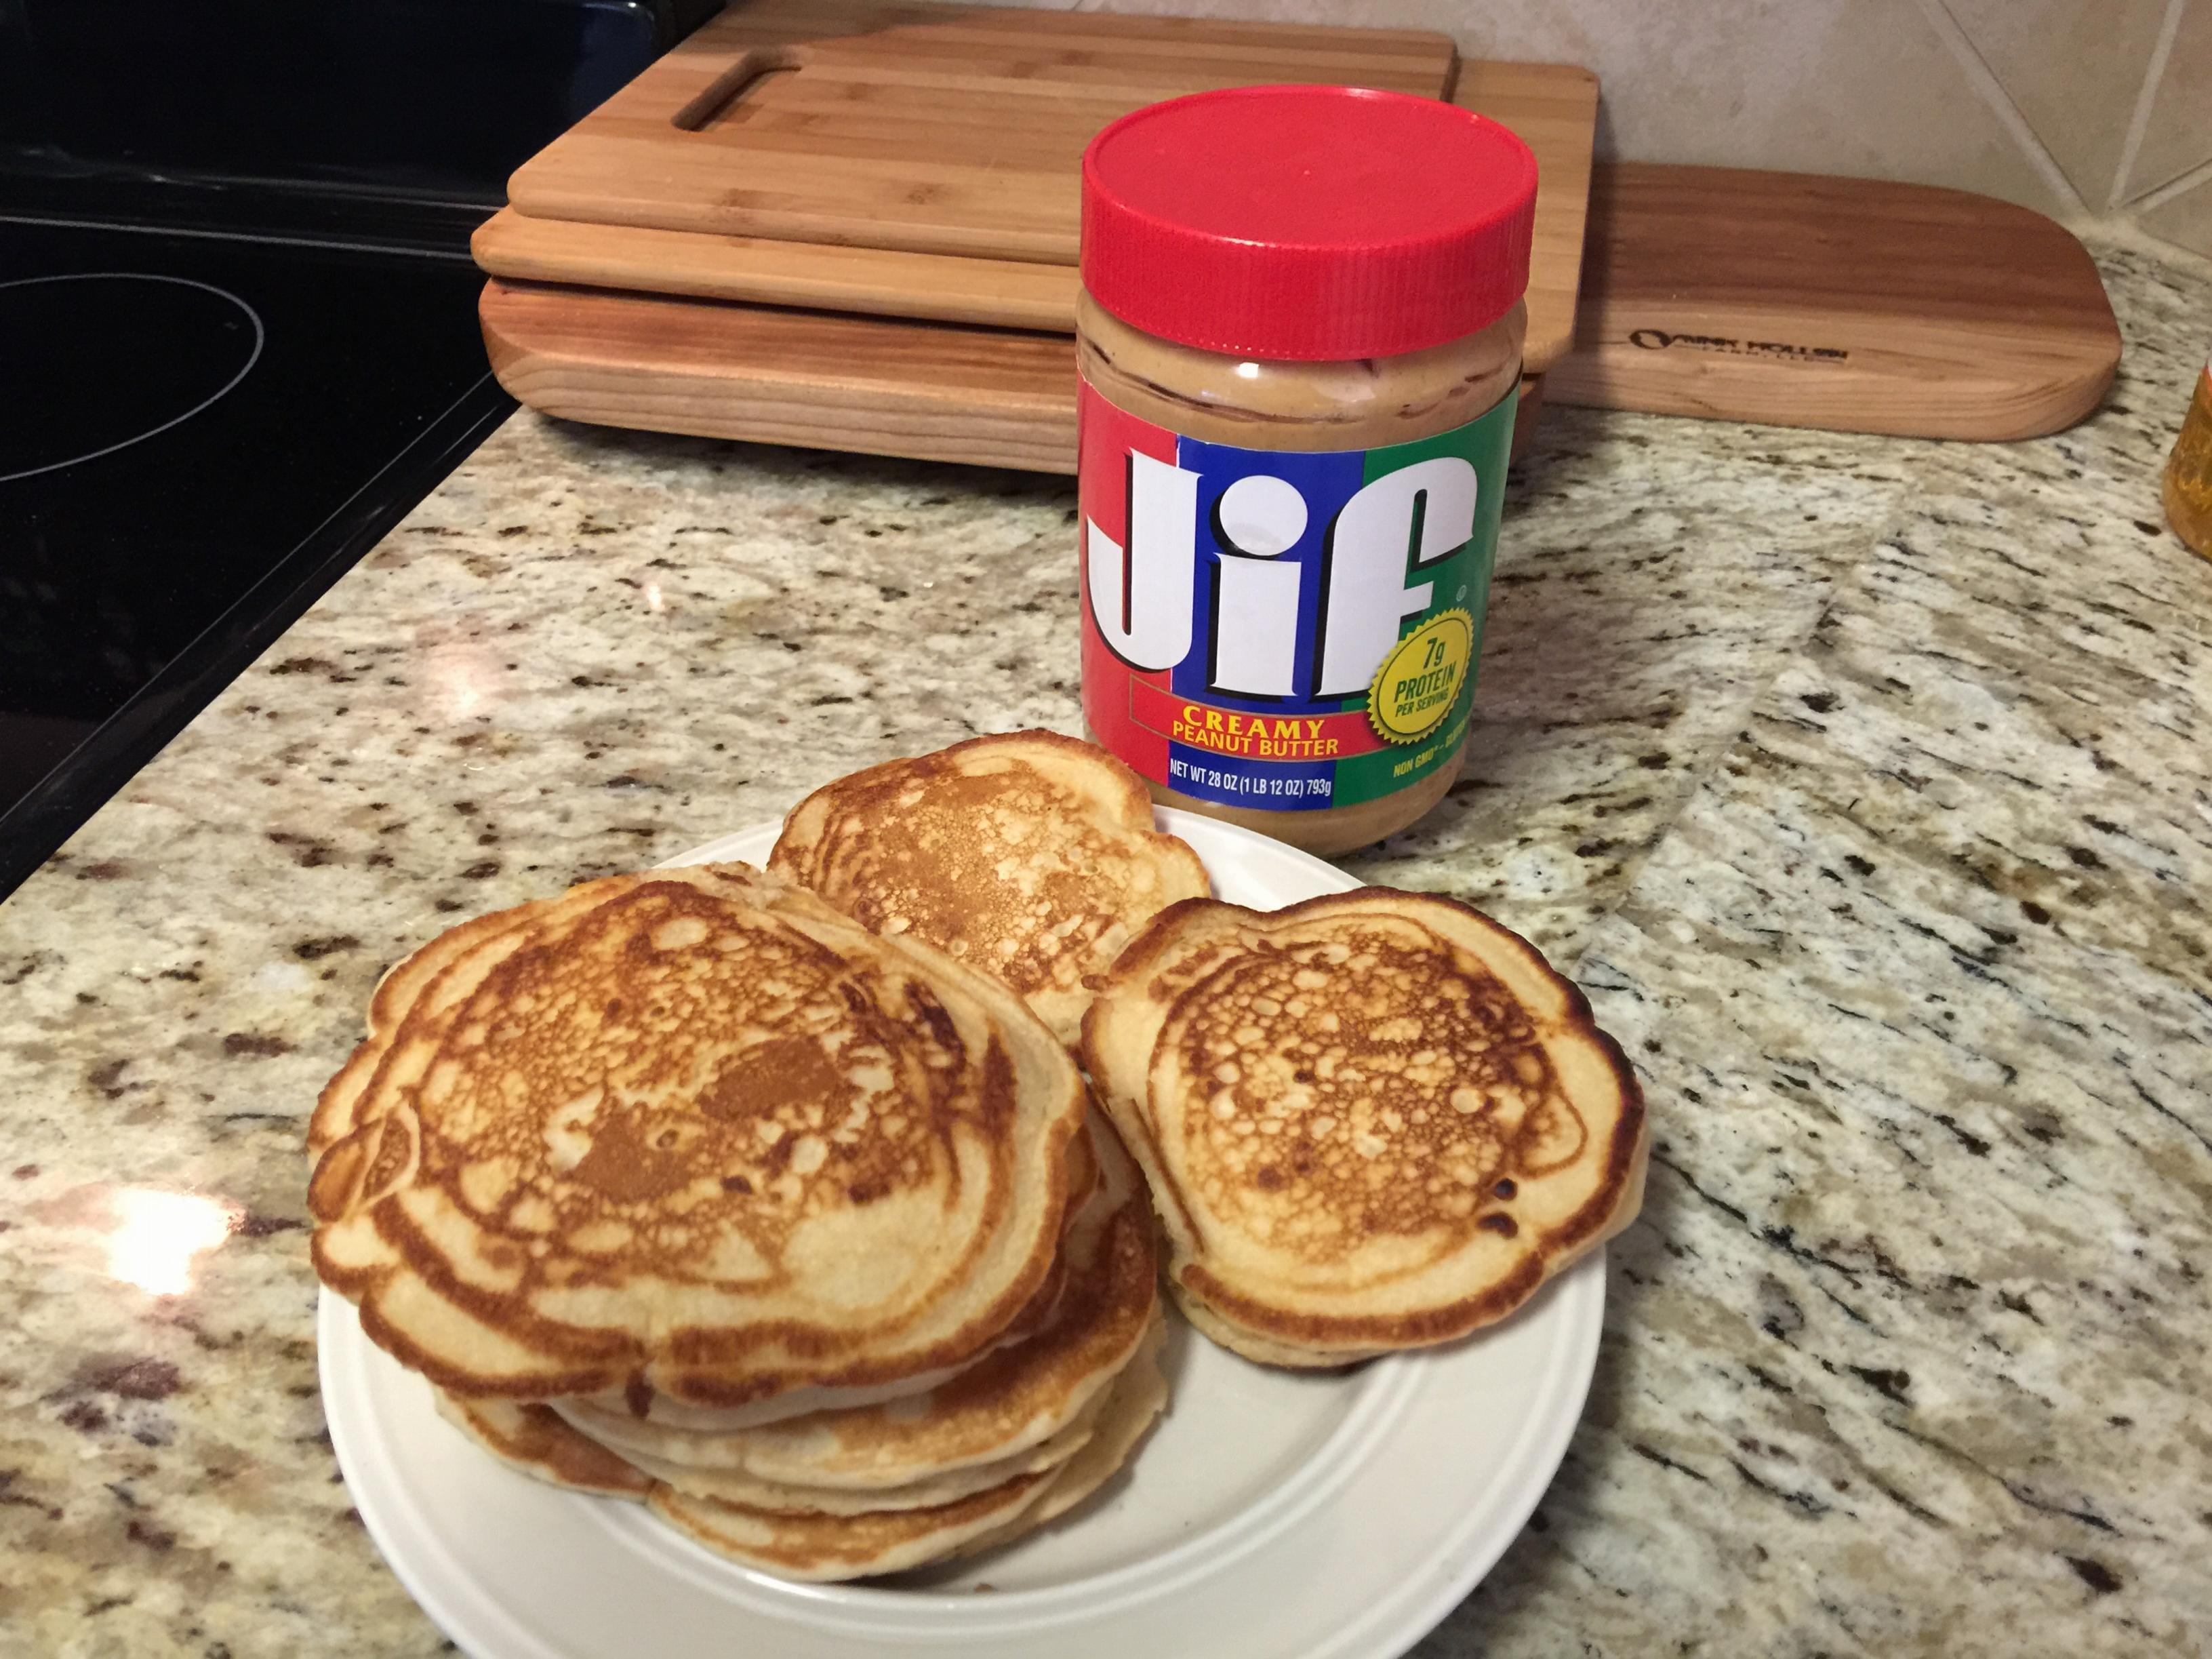 Pancakes with peanut butter in them